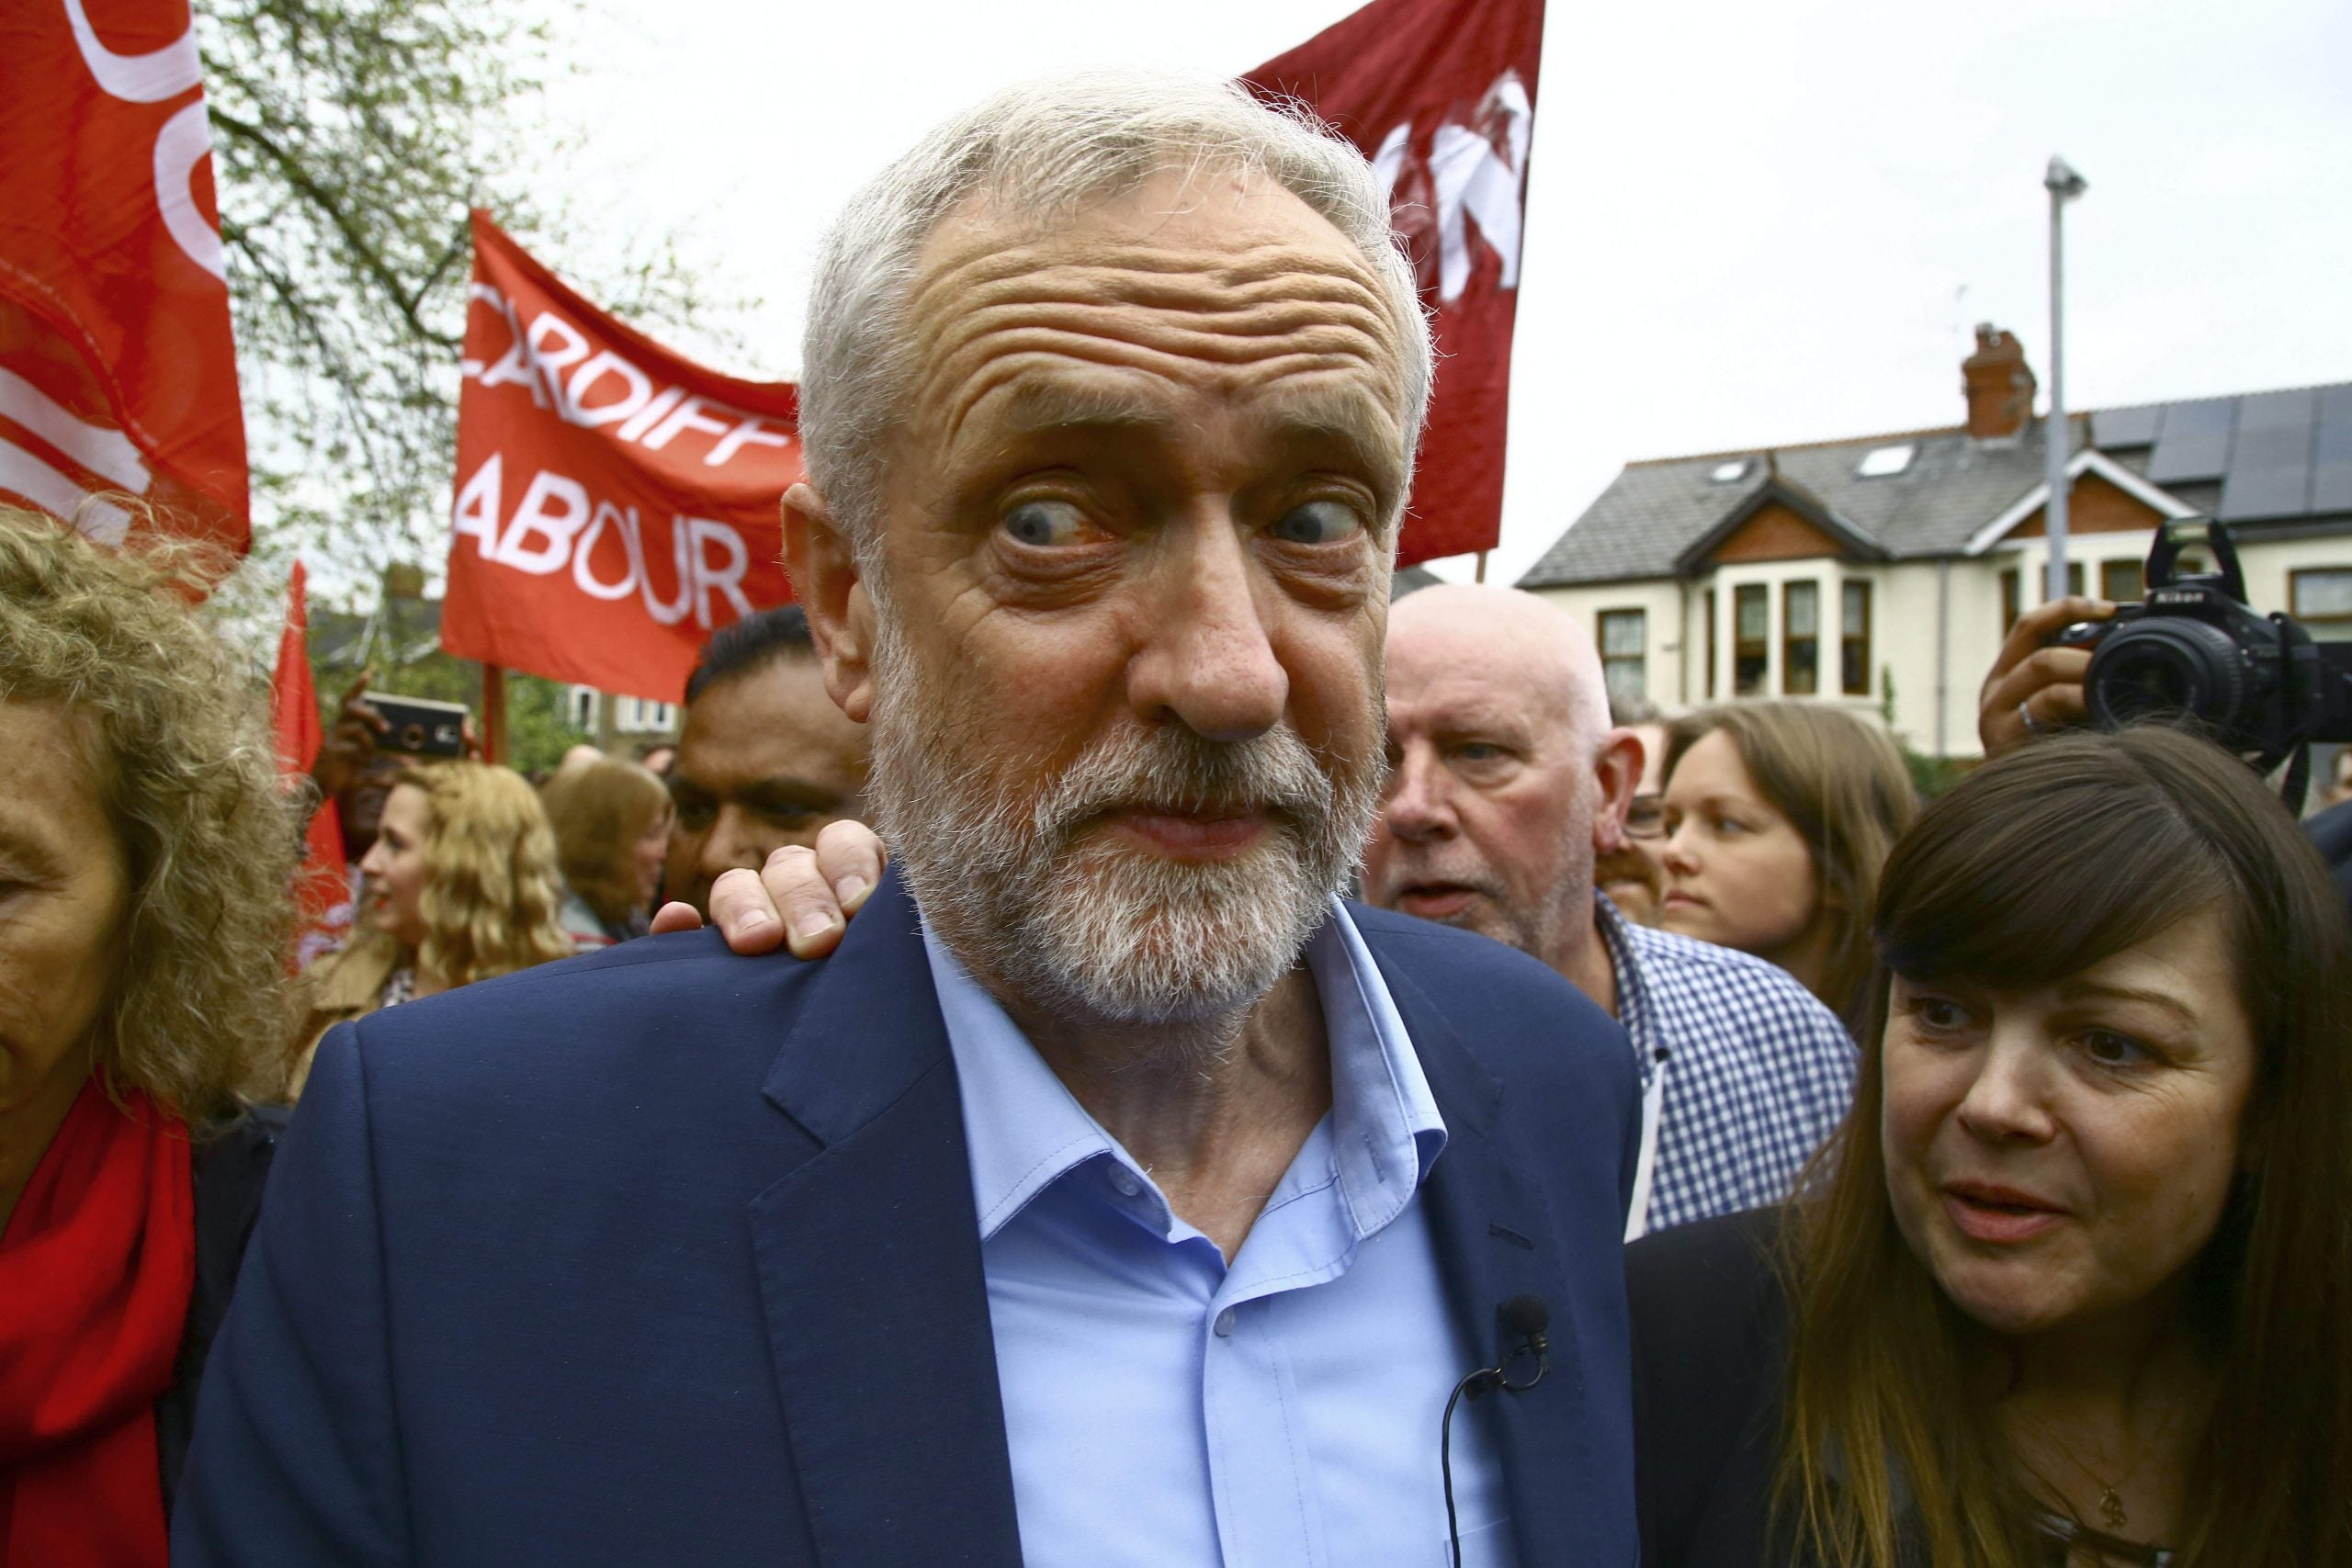 It's no fluke poll - Labour is heading for a landslide in Wales